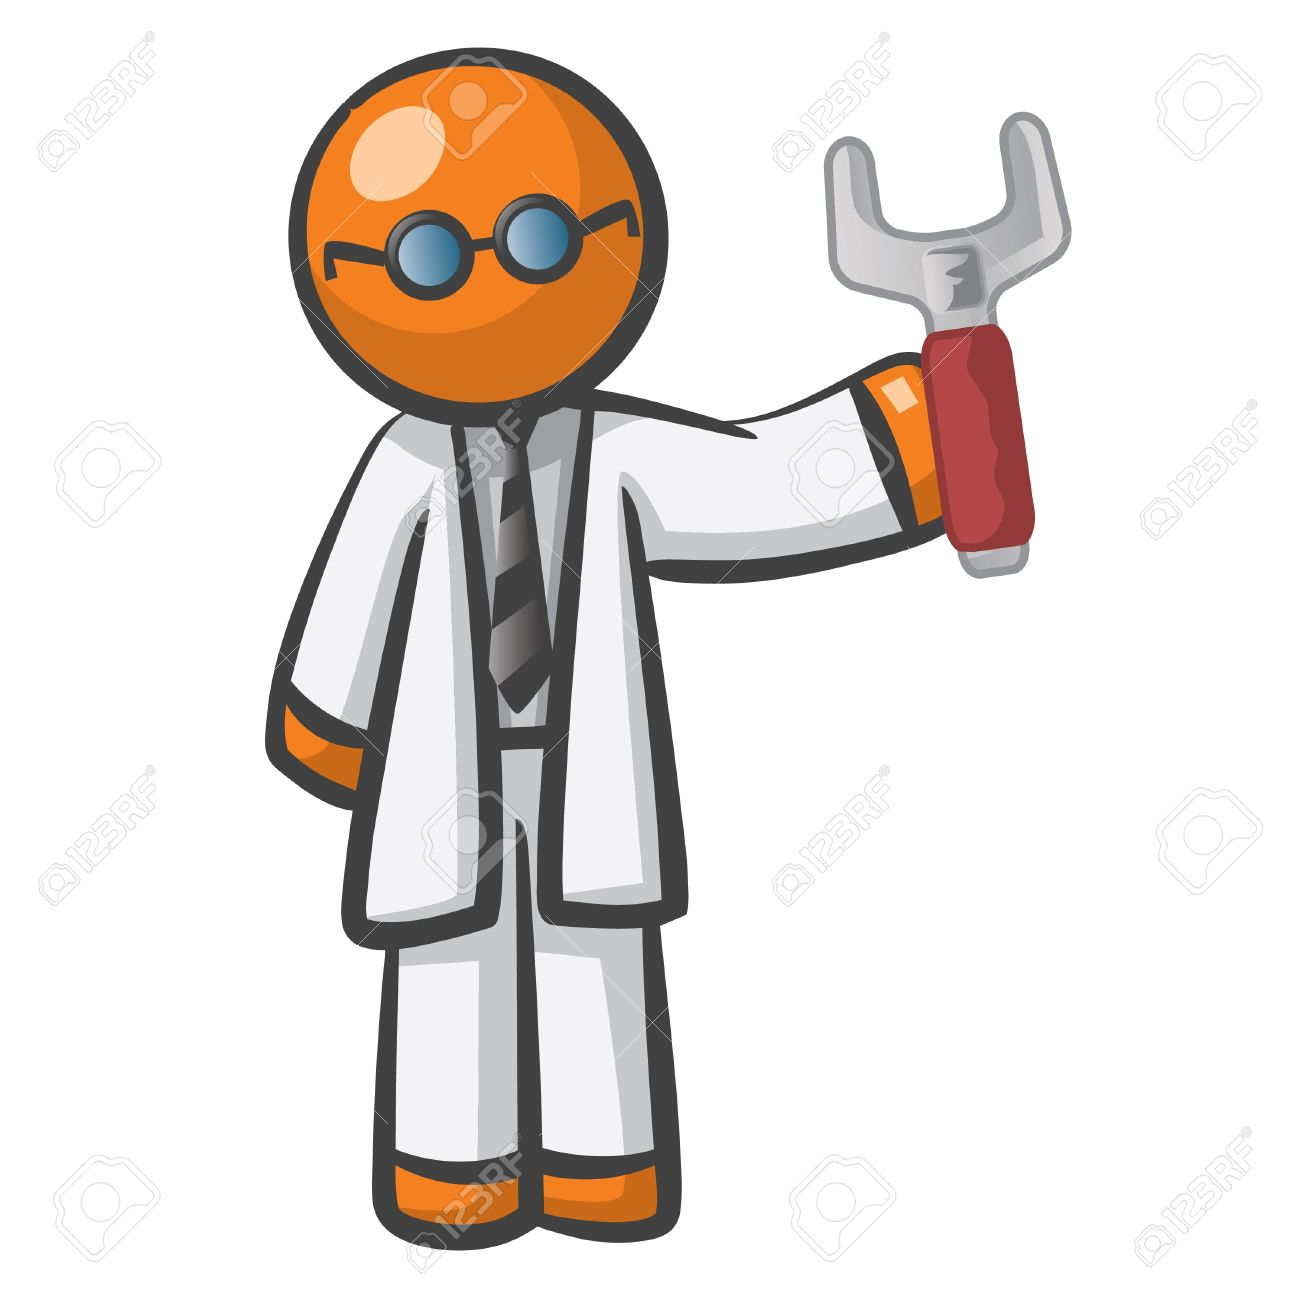 Engineer clipart technician.